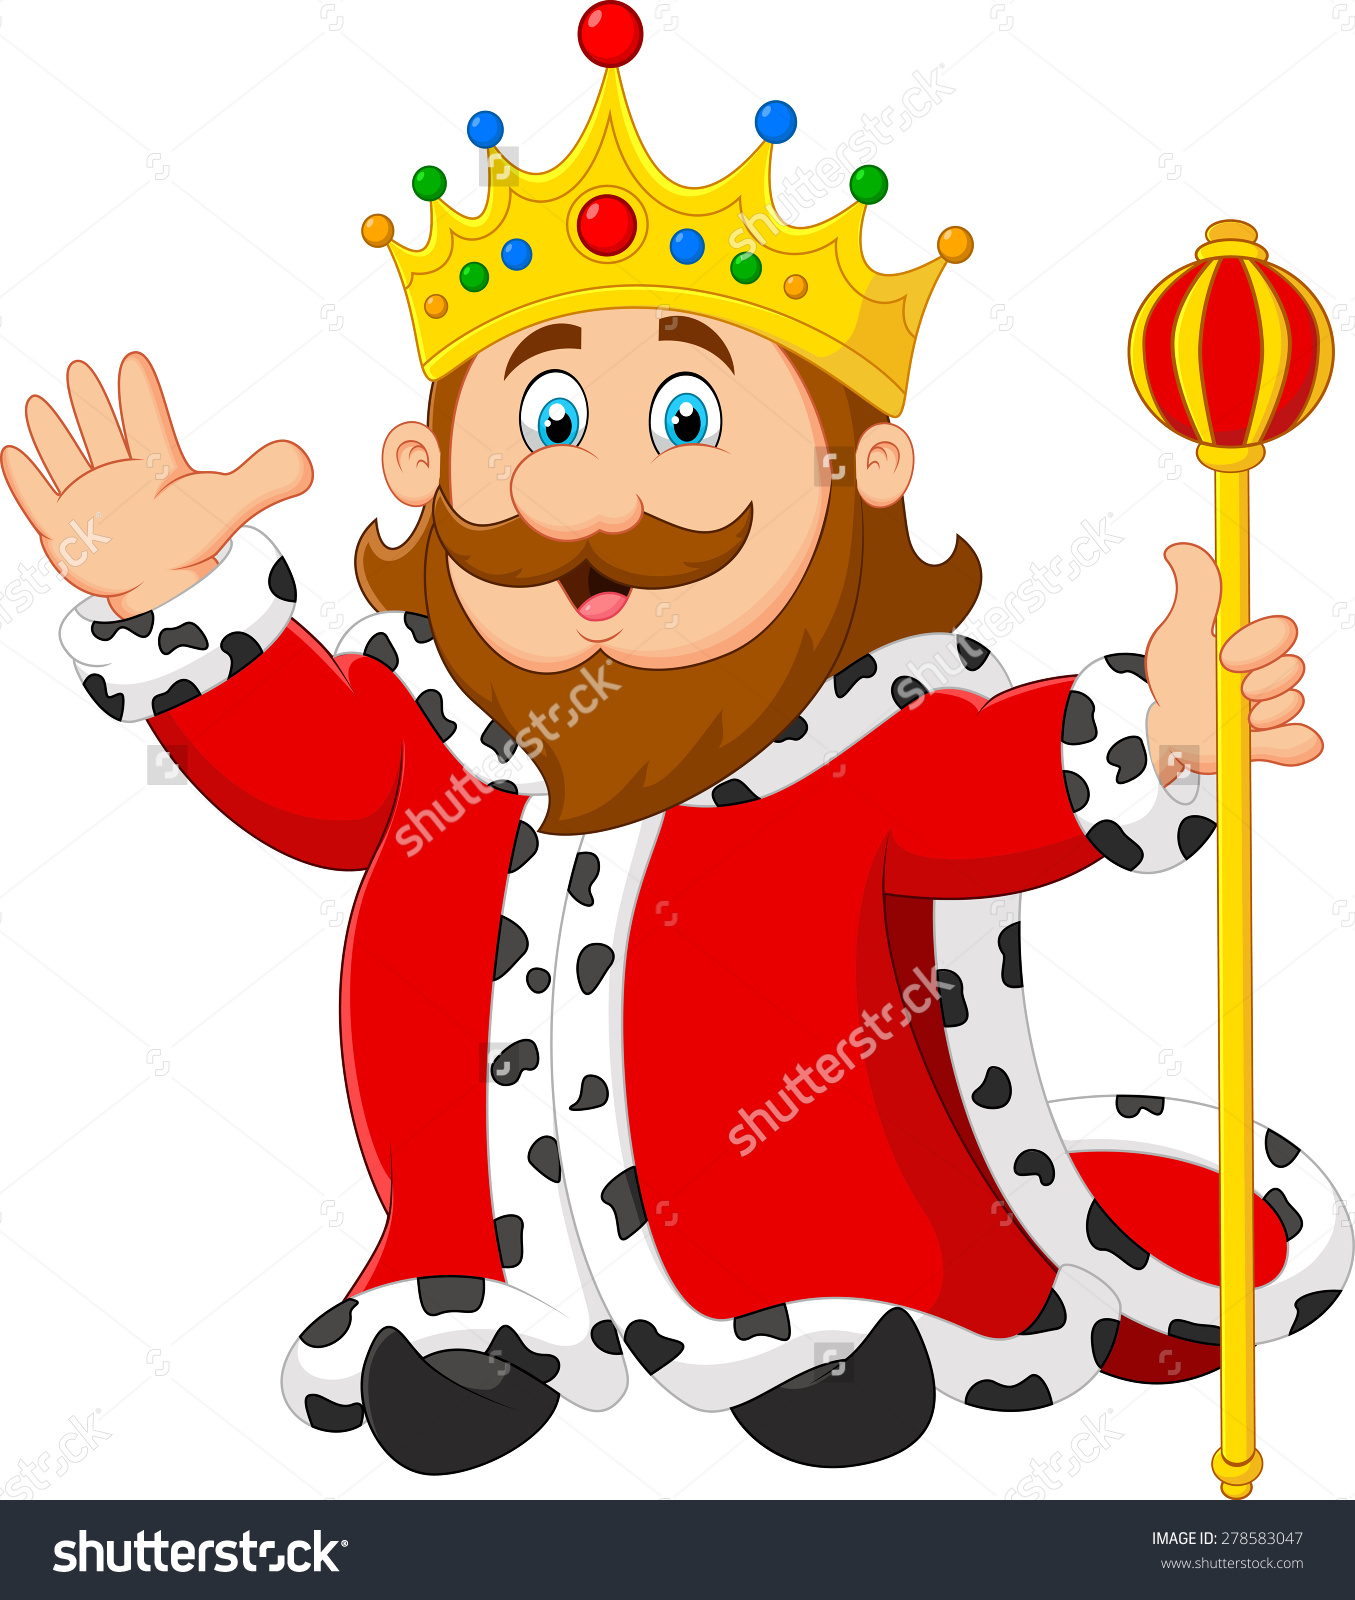 Kings clipart #9